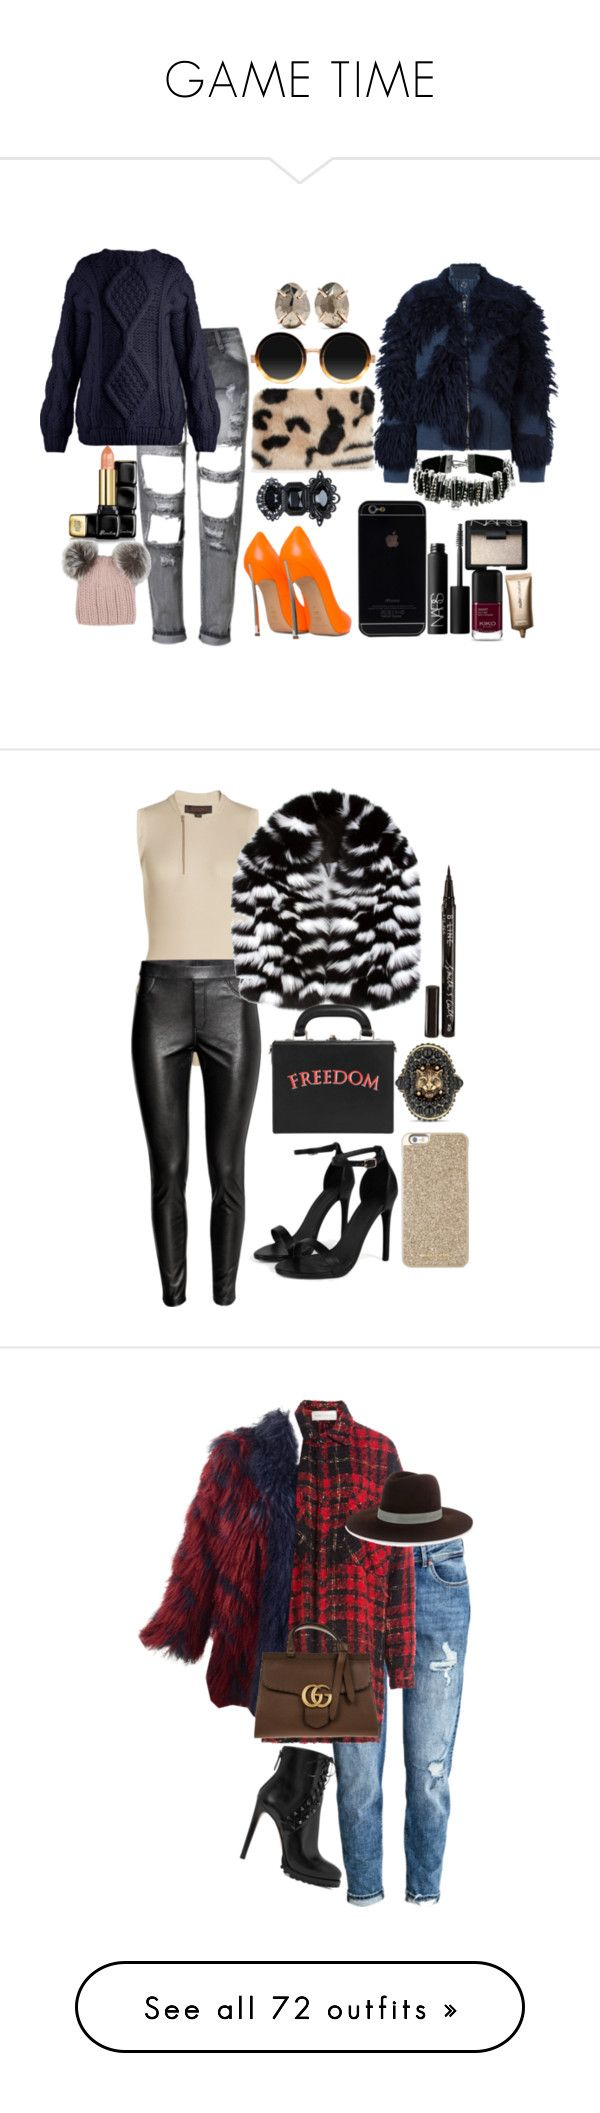 """""""GAME TIME"""" by staydiva on Polyvore featuring moda, Moscot, Shrimps, I Love Mr. Mittens, 3.1 Phillip Lim, Melissa Joy Manning, Marc Jacobs, Dsquared2, NARS Cosmetics y Nude by Nature"""